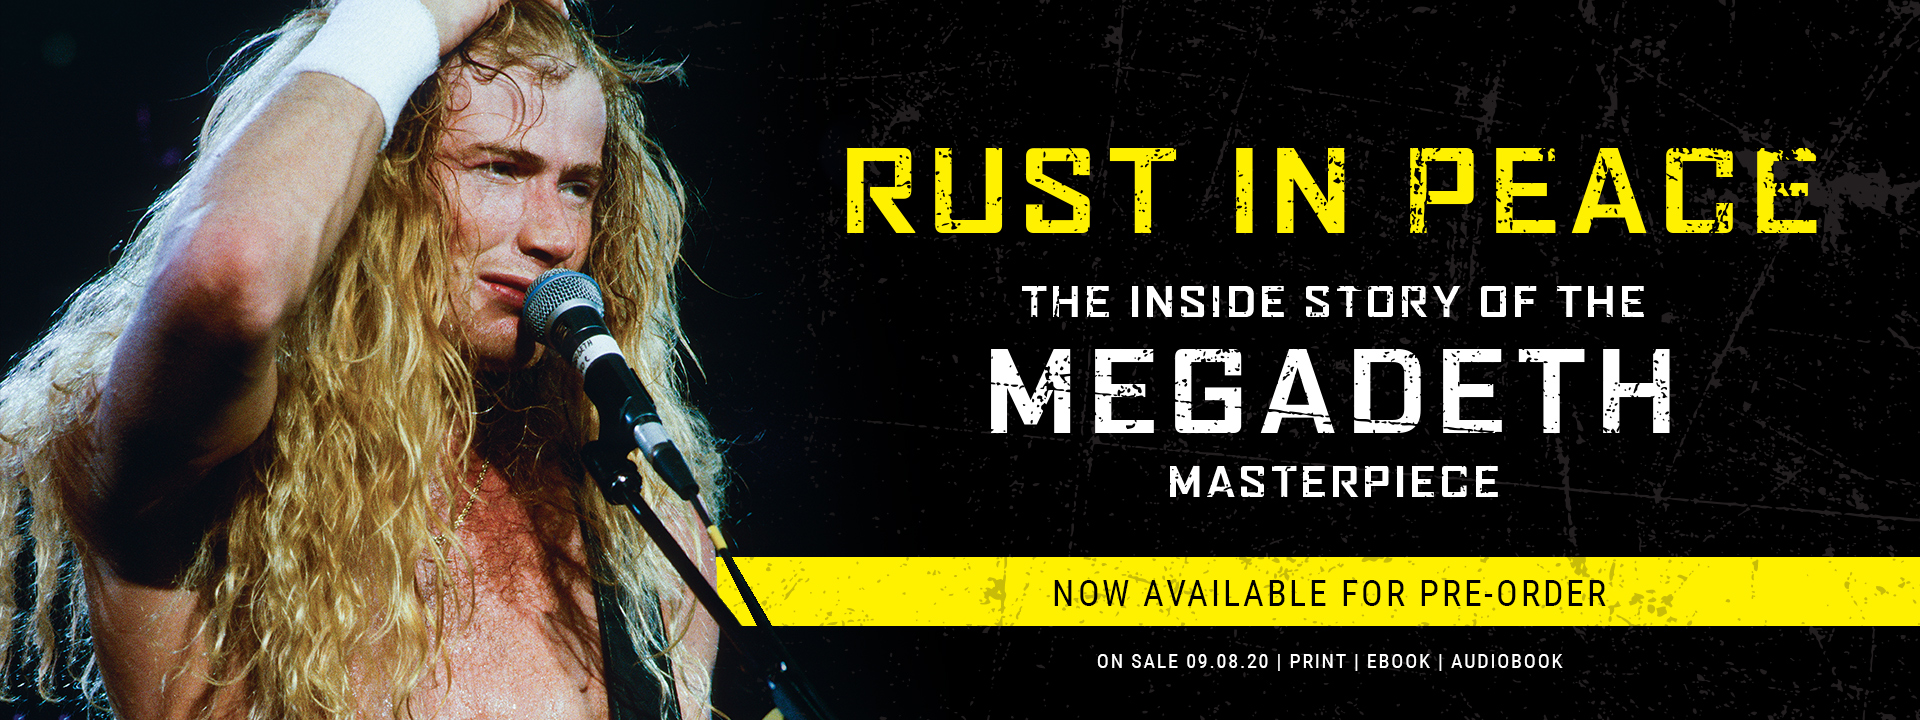 Rust In Peace - The inside story of the Megadeth masterpiece. | Now available for pre-order. On sale September 8, 2020 for print, eBook, and audiobook.